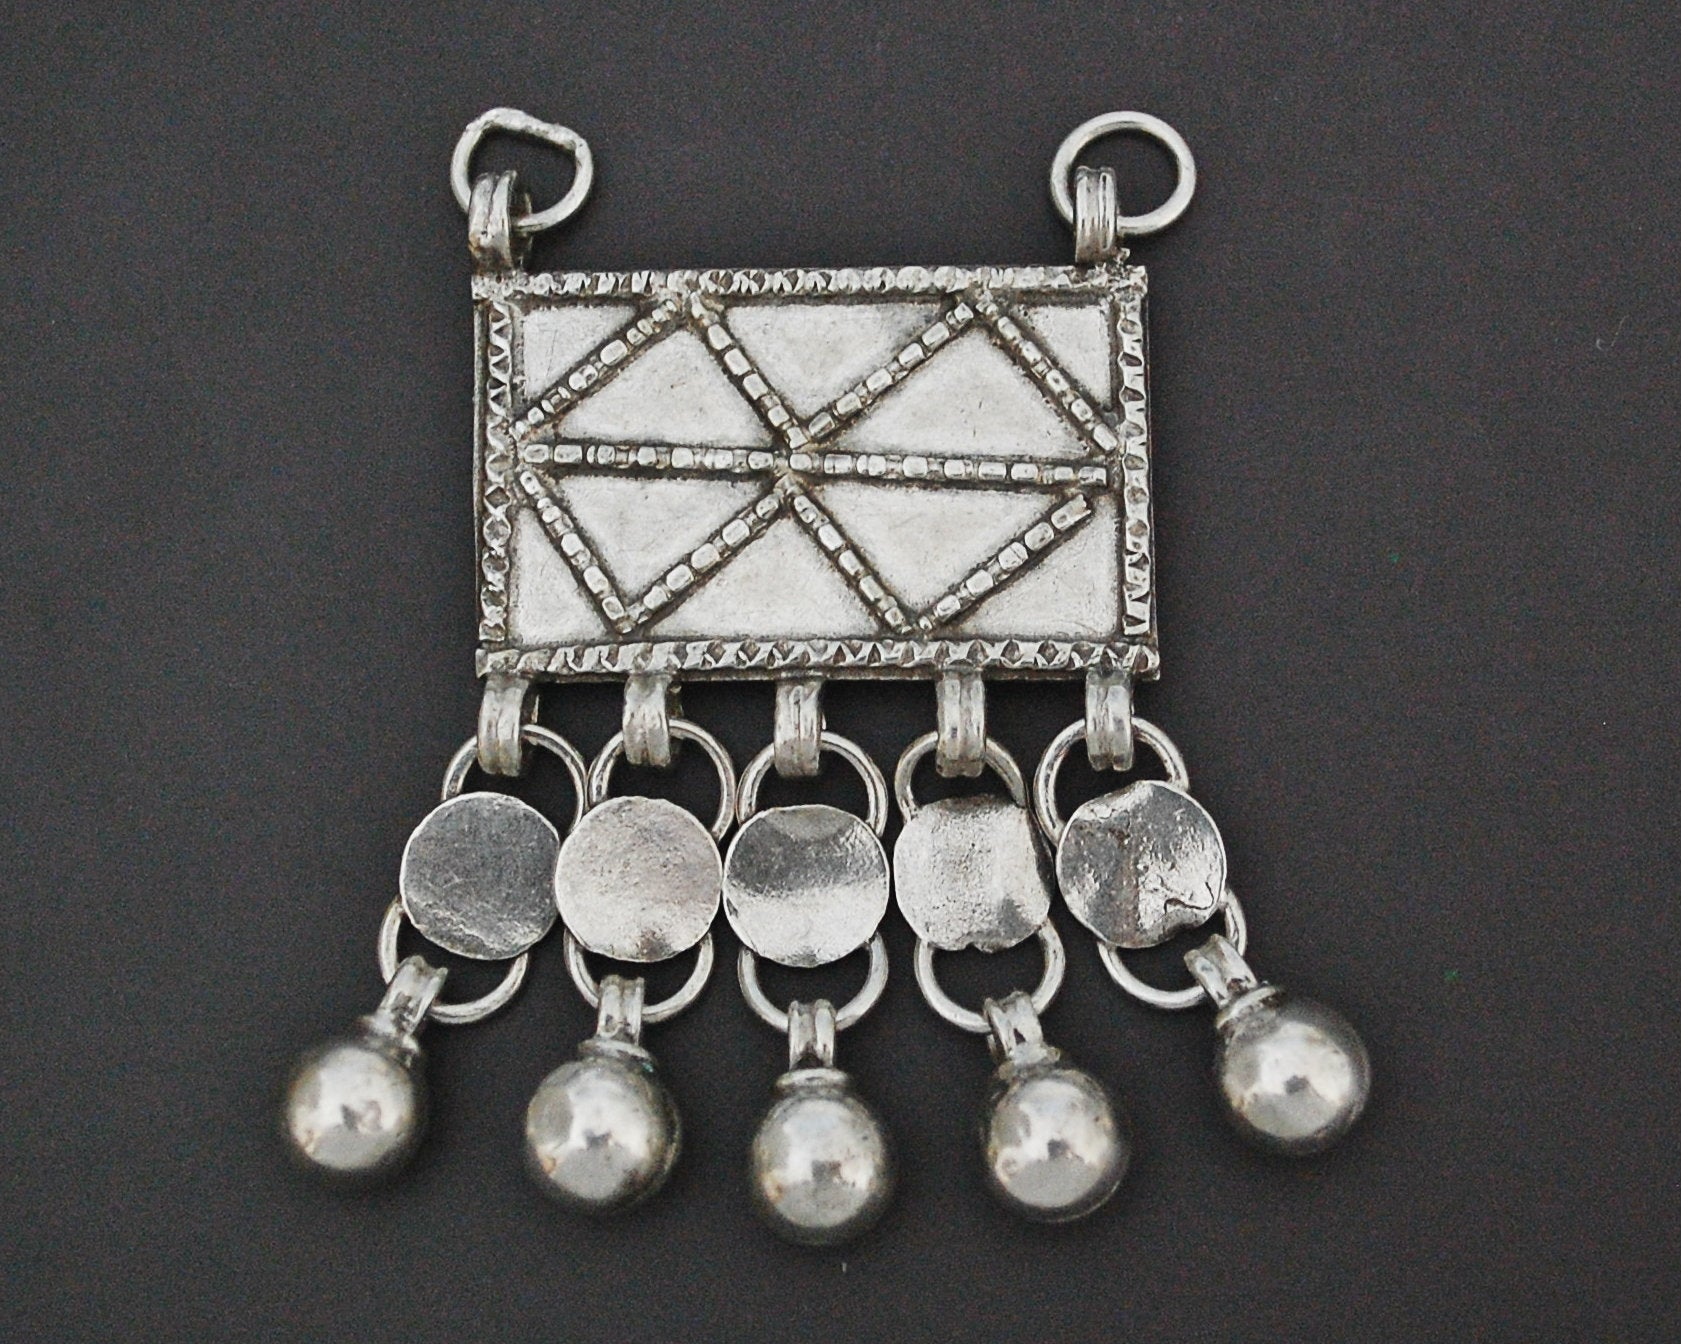 Bedouin Egyptian Zar Amulet with Bells